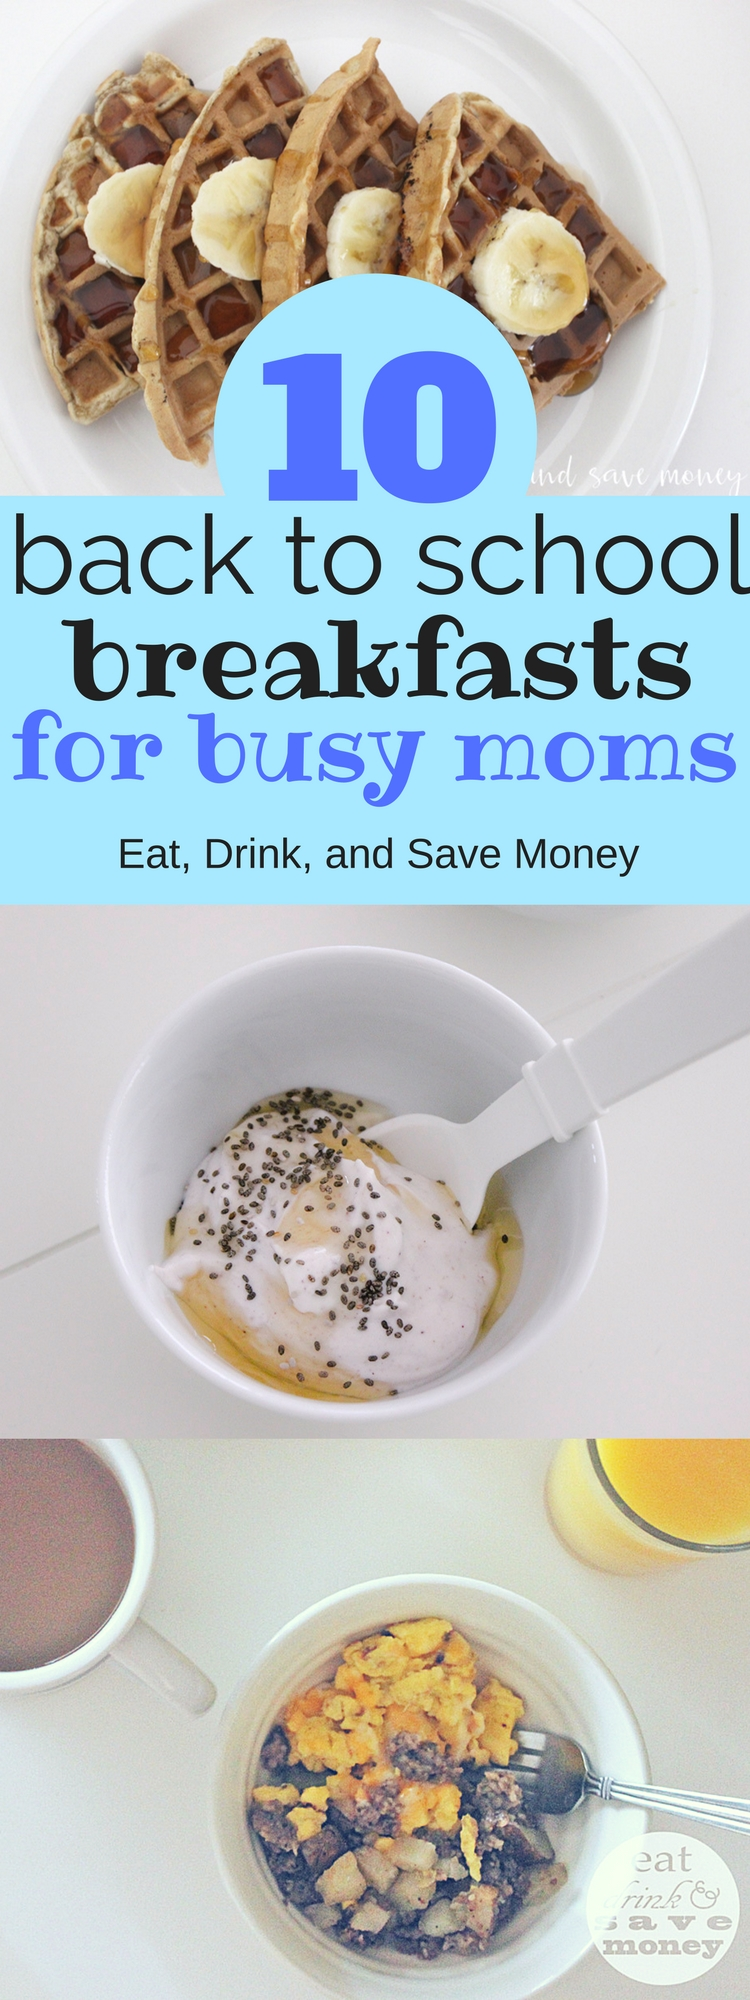 10 Back to School Breakfasts for busy moms. Check out these easy back to school breakfast ideas for busy moms. These ideas are realistic and will help you come up with easy breakfasts.